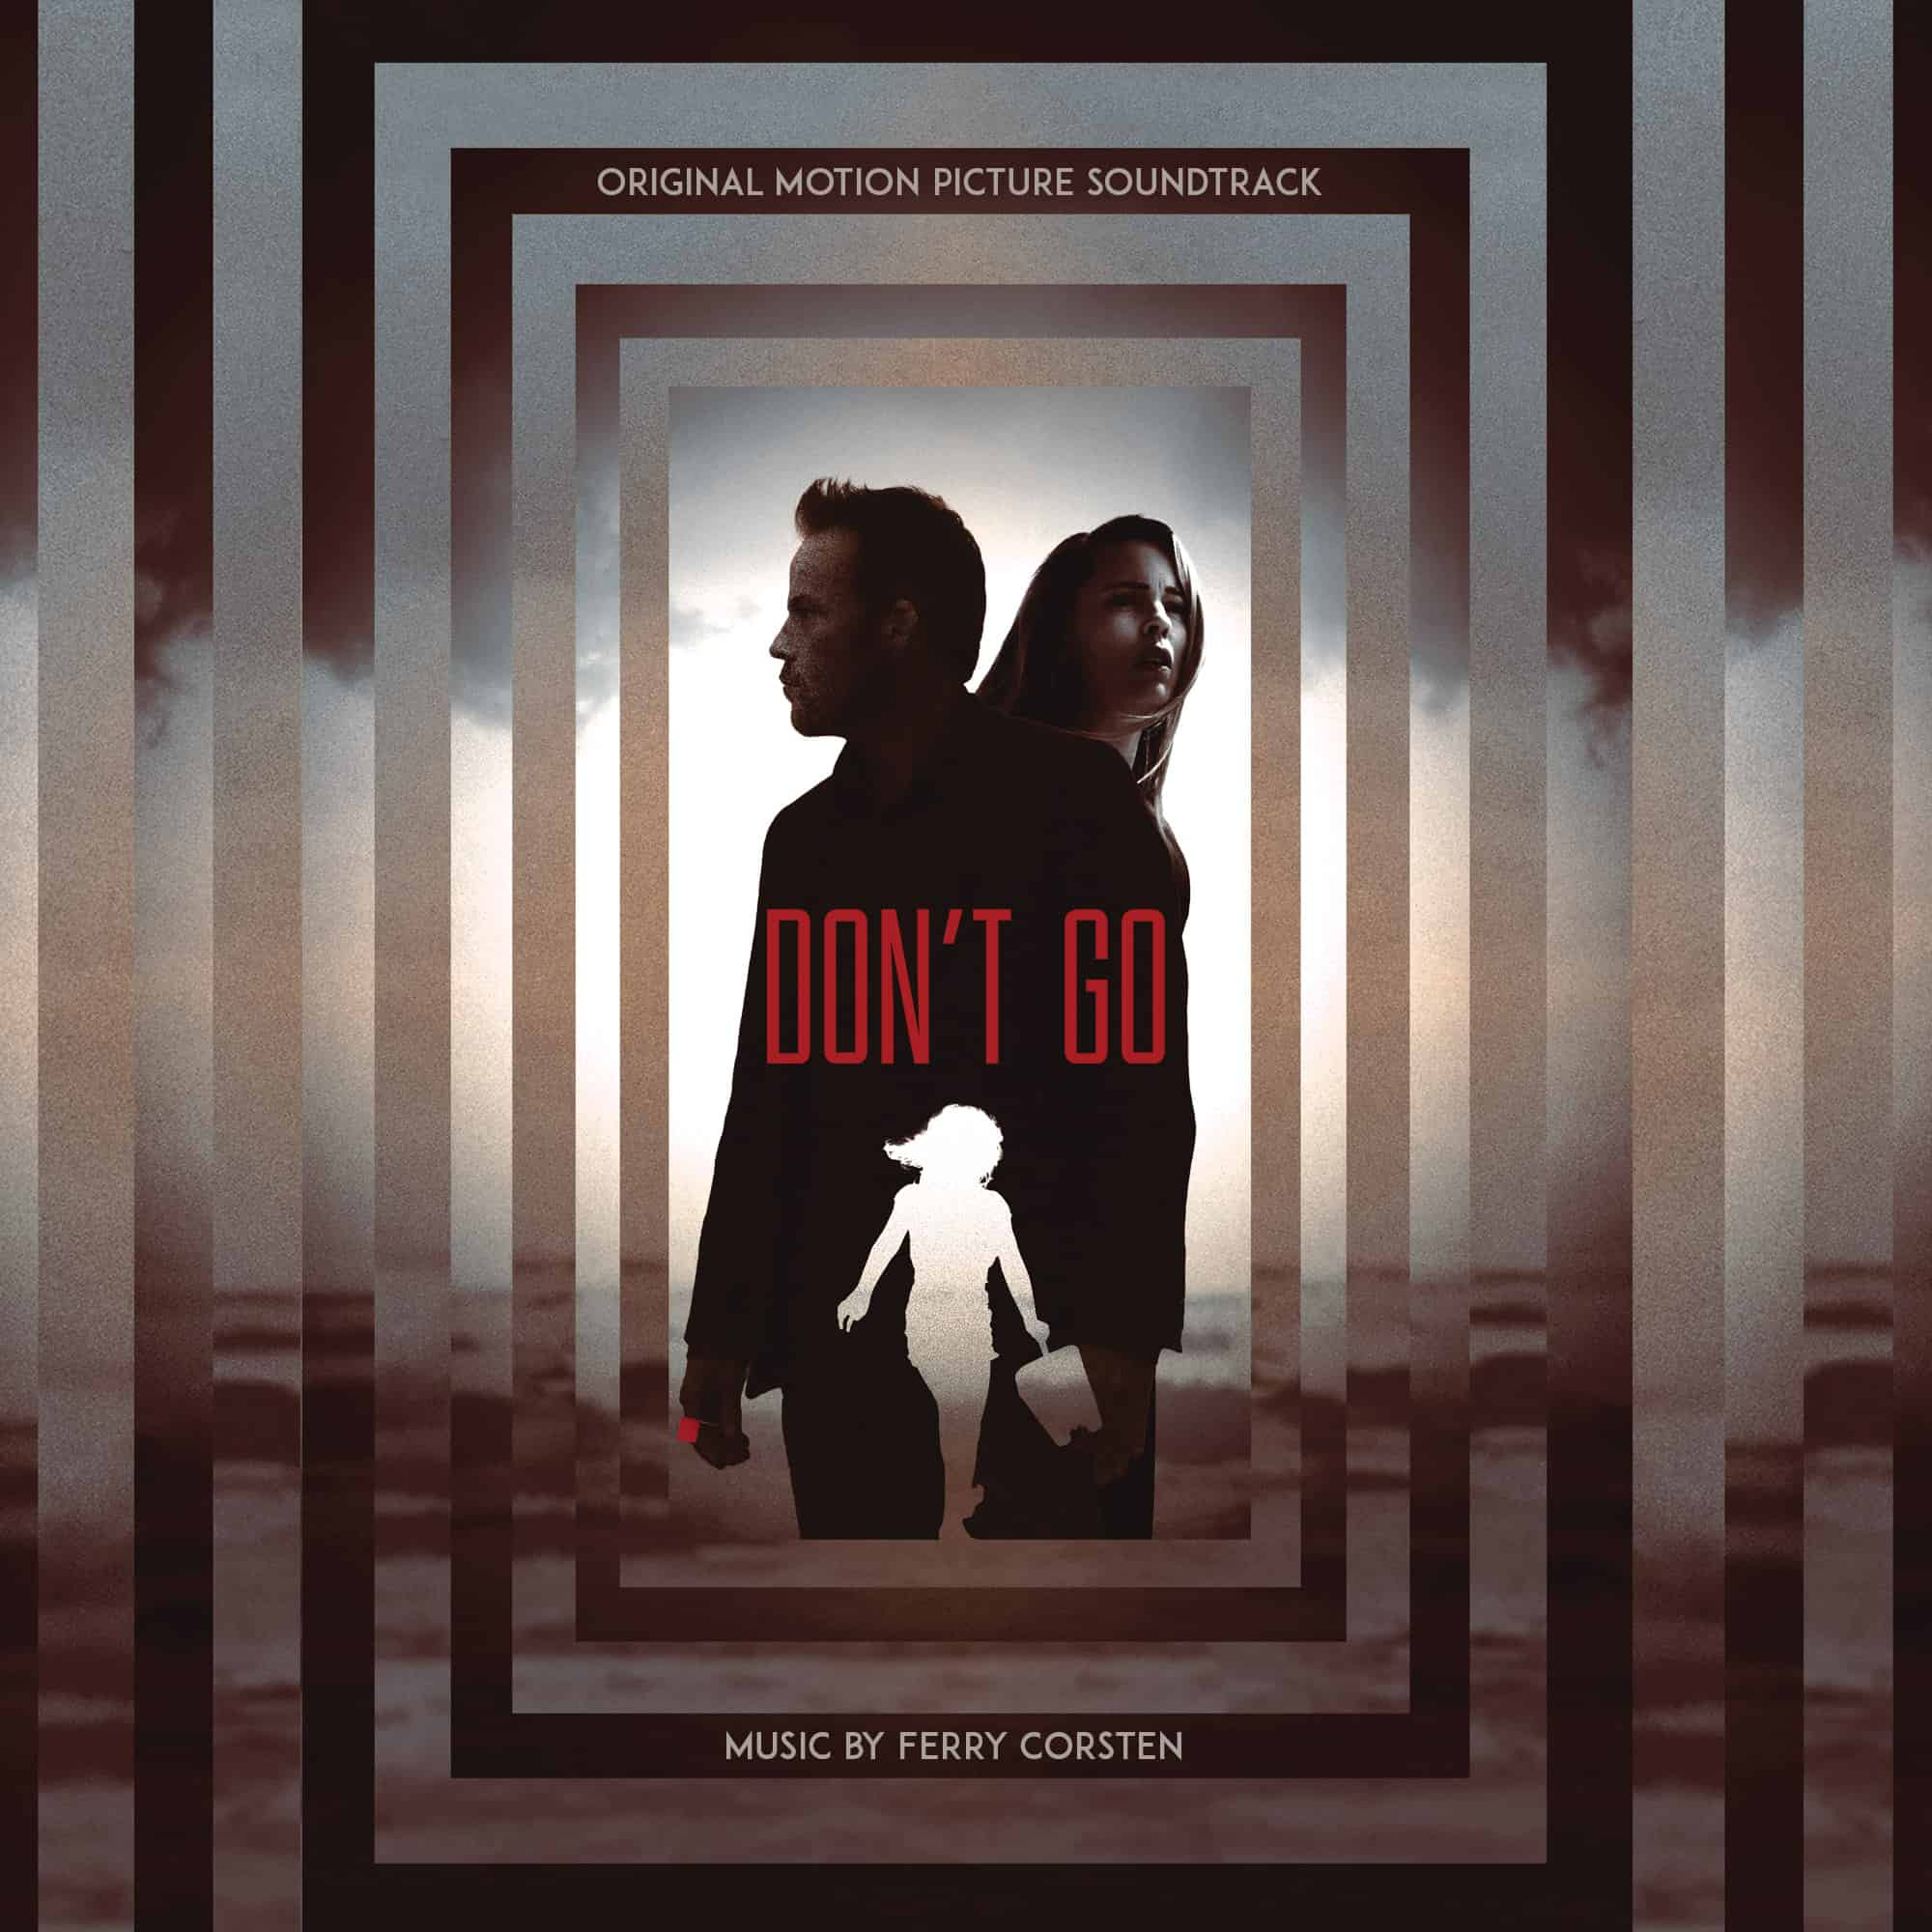 Ferry Corsten releases debut film score for 'Don't Go'